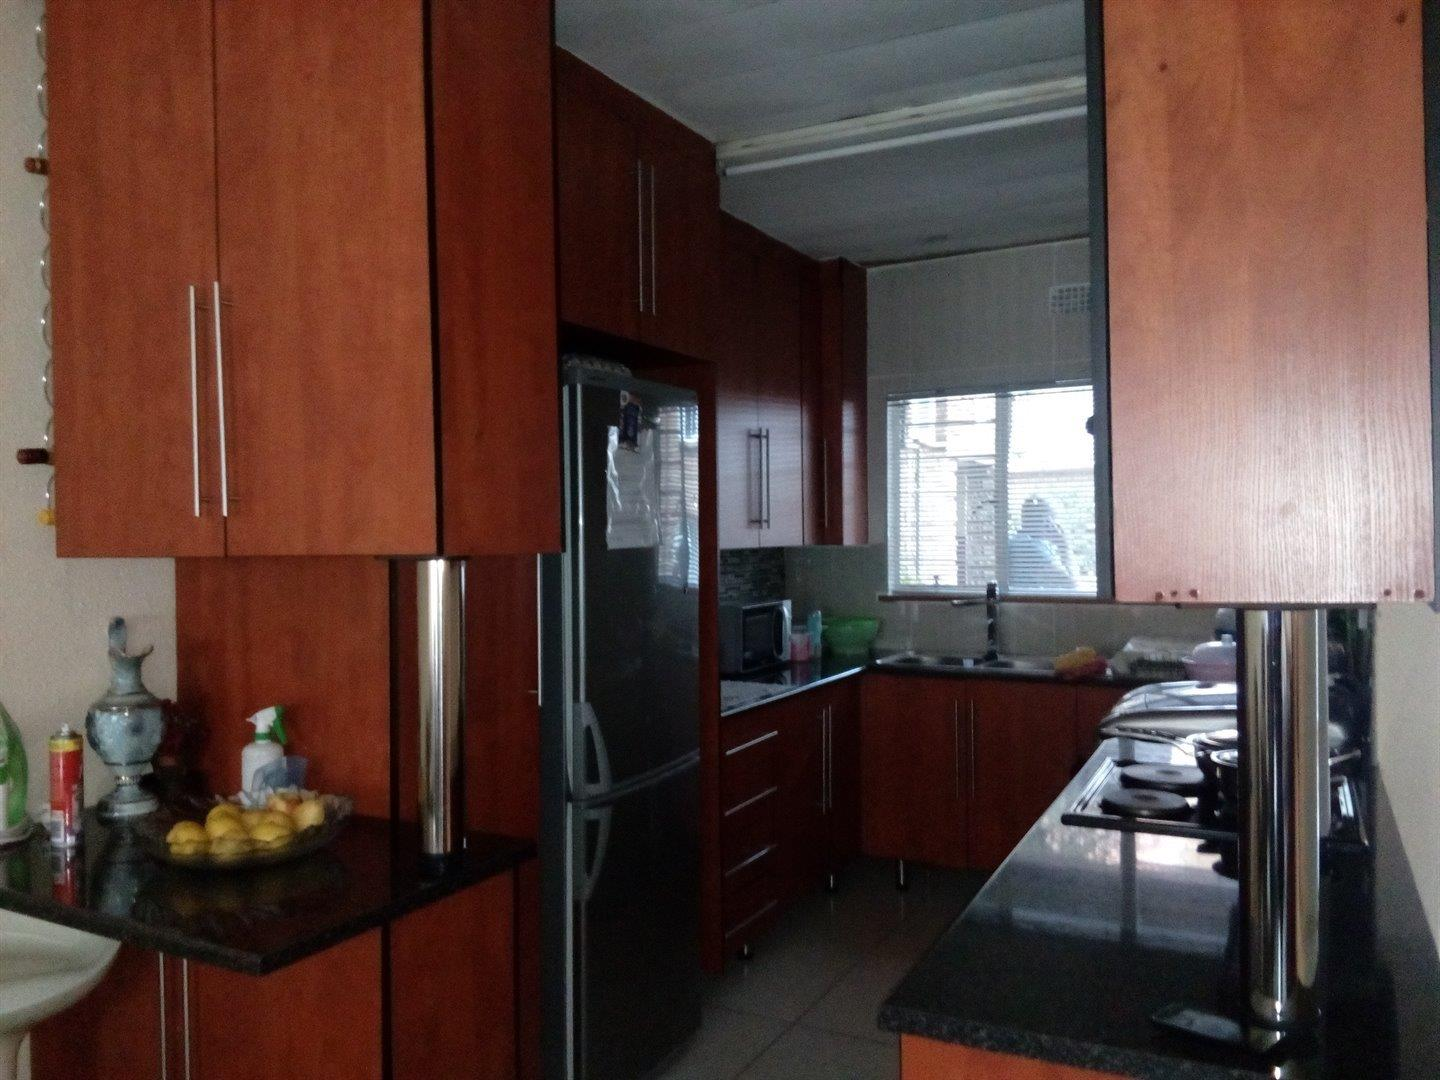 2 Bedroom Apartment for Sale in Princess A H, Roodepoort - Gauteng